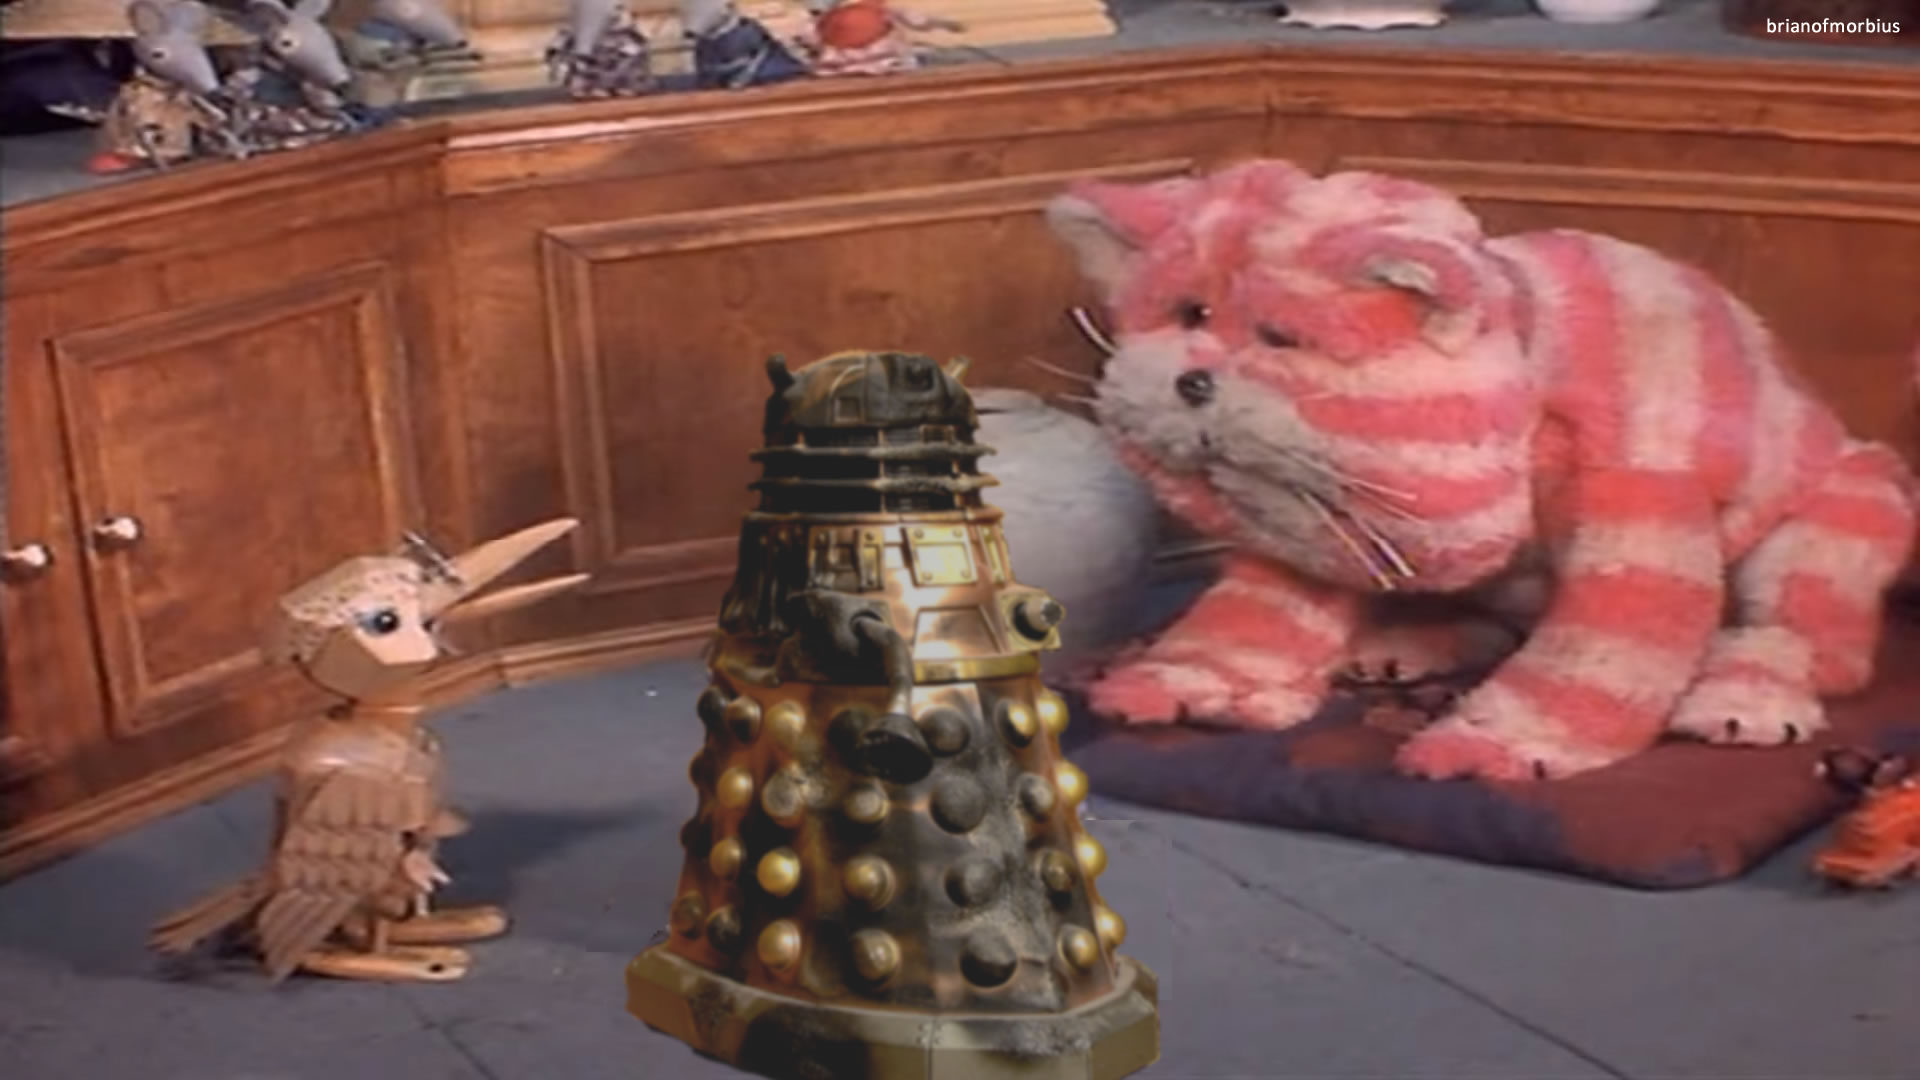 Meanwhile There Is Chaos Over At Bagpuss & Co When Emily Brings In Her  Latest Lost Thing For Repair